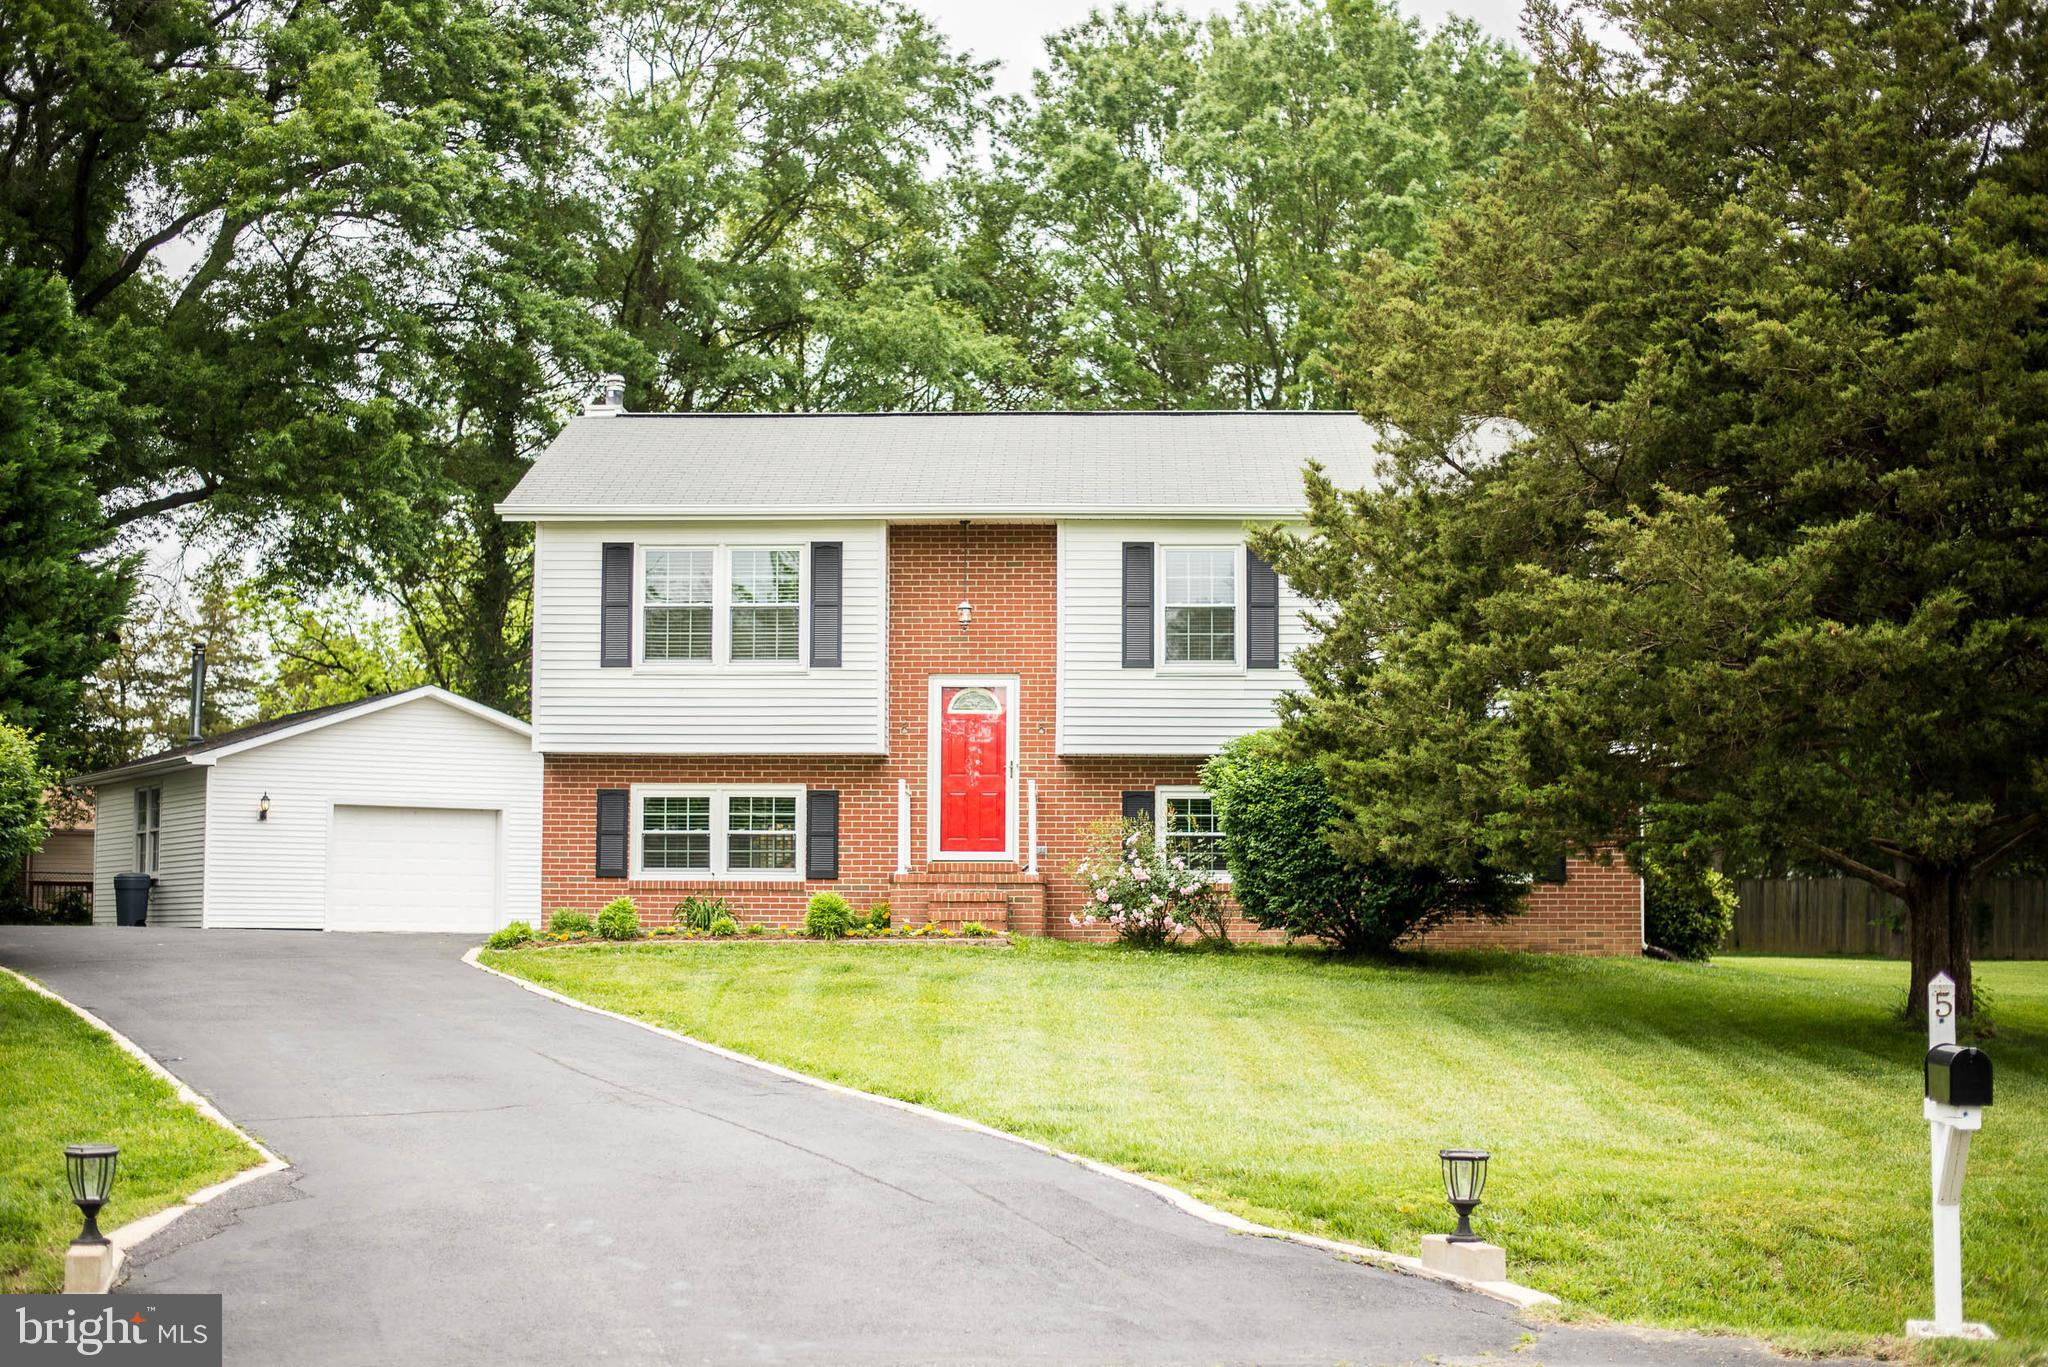 Beautiful, updated split level in an absolutely wonderful location: being situated at the end of a c